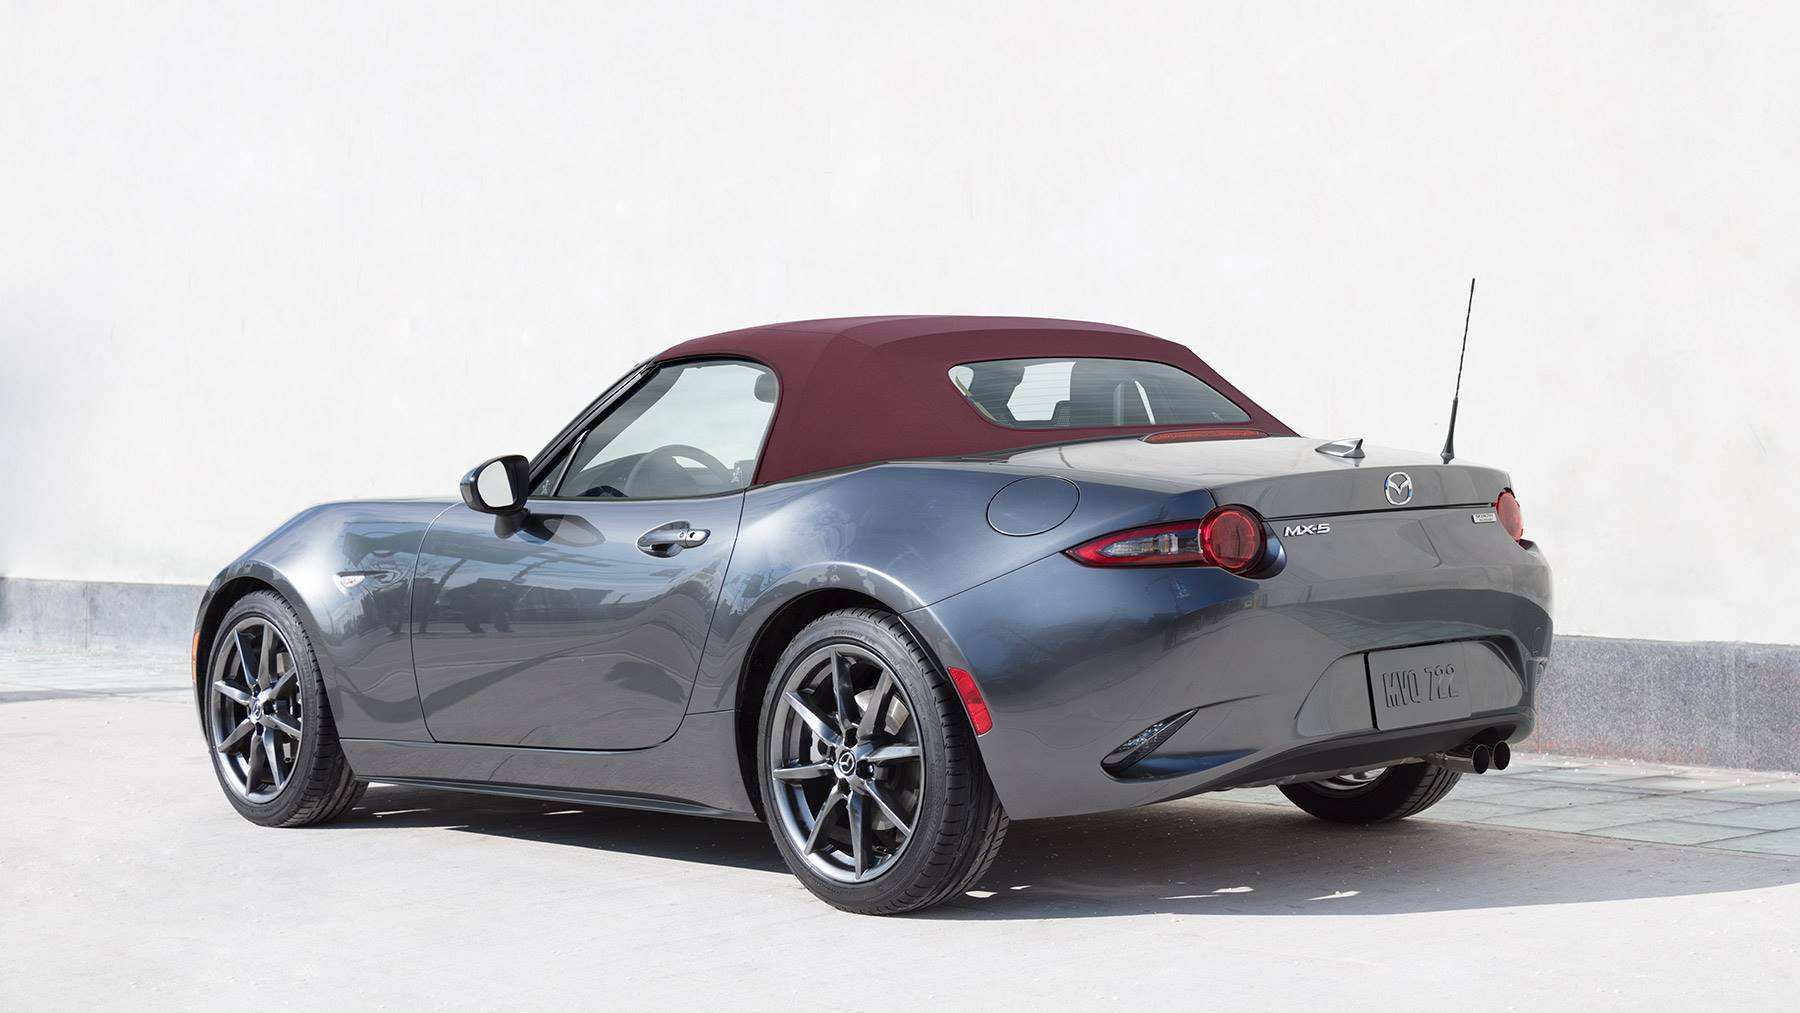 28 All New 2019 Mazda Mx 5 Images